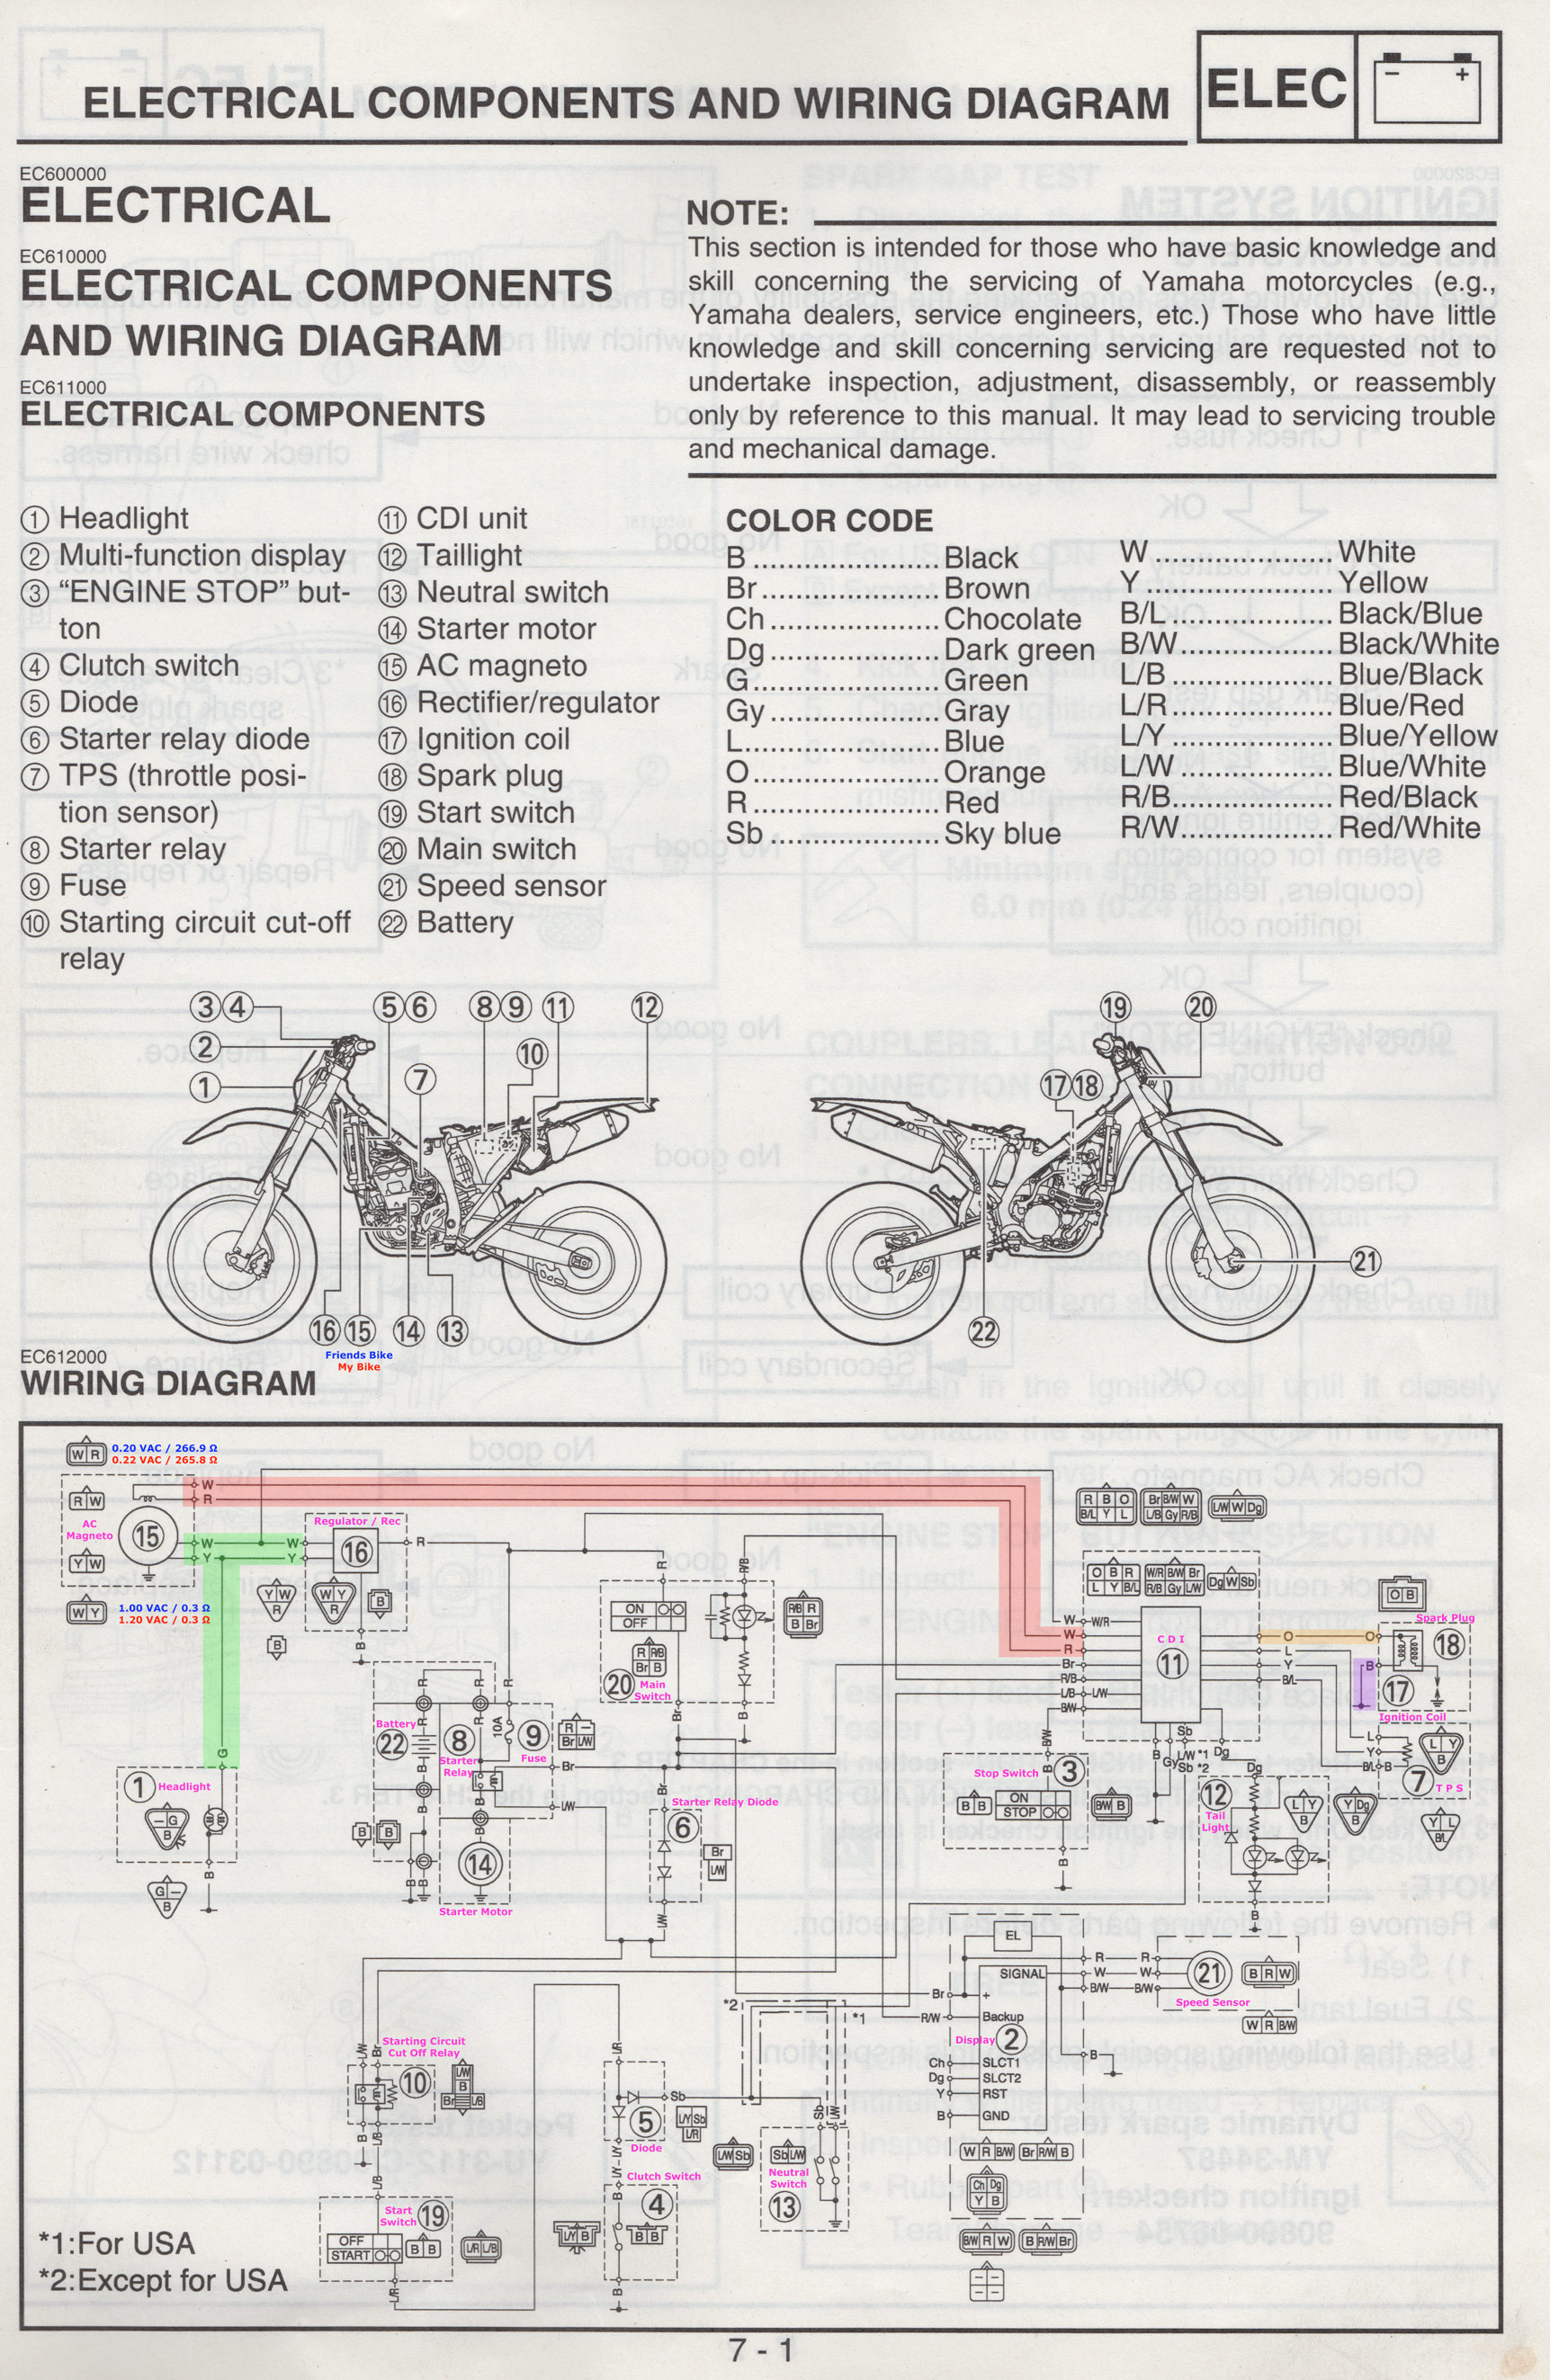 scott tv wiring diagrams halogen h11 headlight wiring harness Cable TV Connection Diagram  Sears Wiring Diagram Ceiling Fans Diagrams Wiring TV to DVD